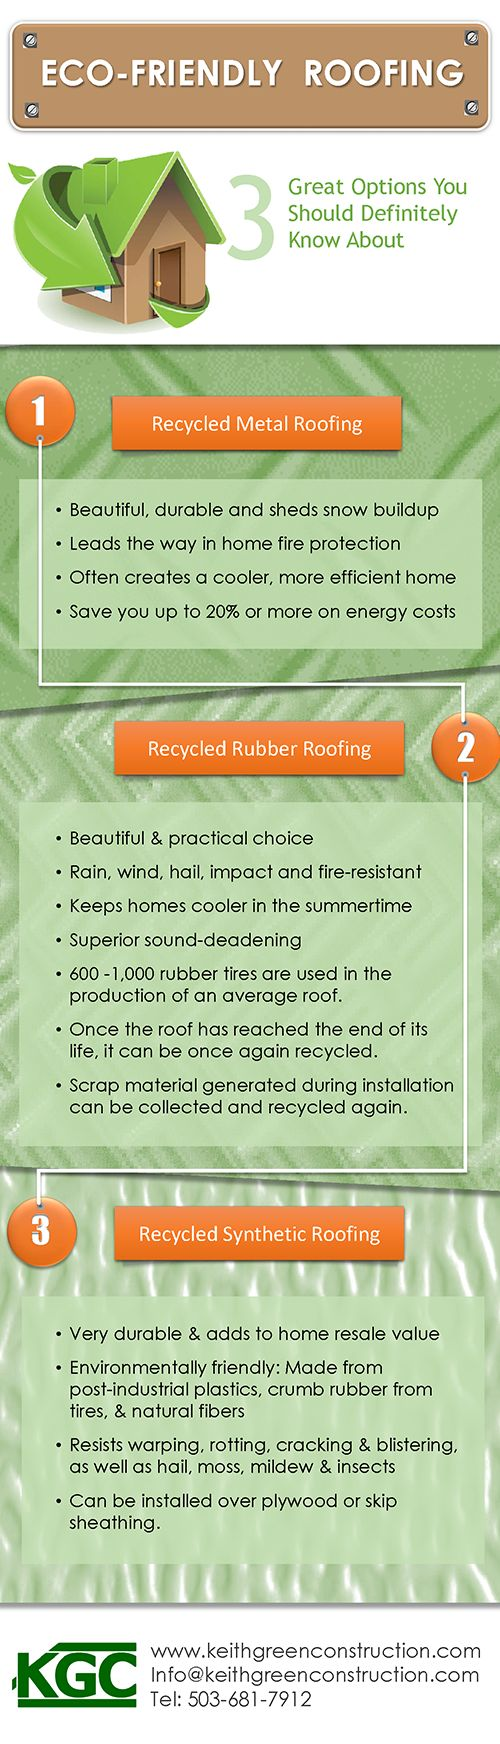 Find Out More About Three Great Eco Friendly Portland Roofing Options:  Recycled Metal Roofing